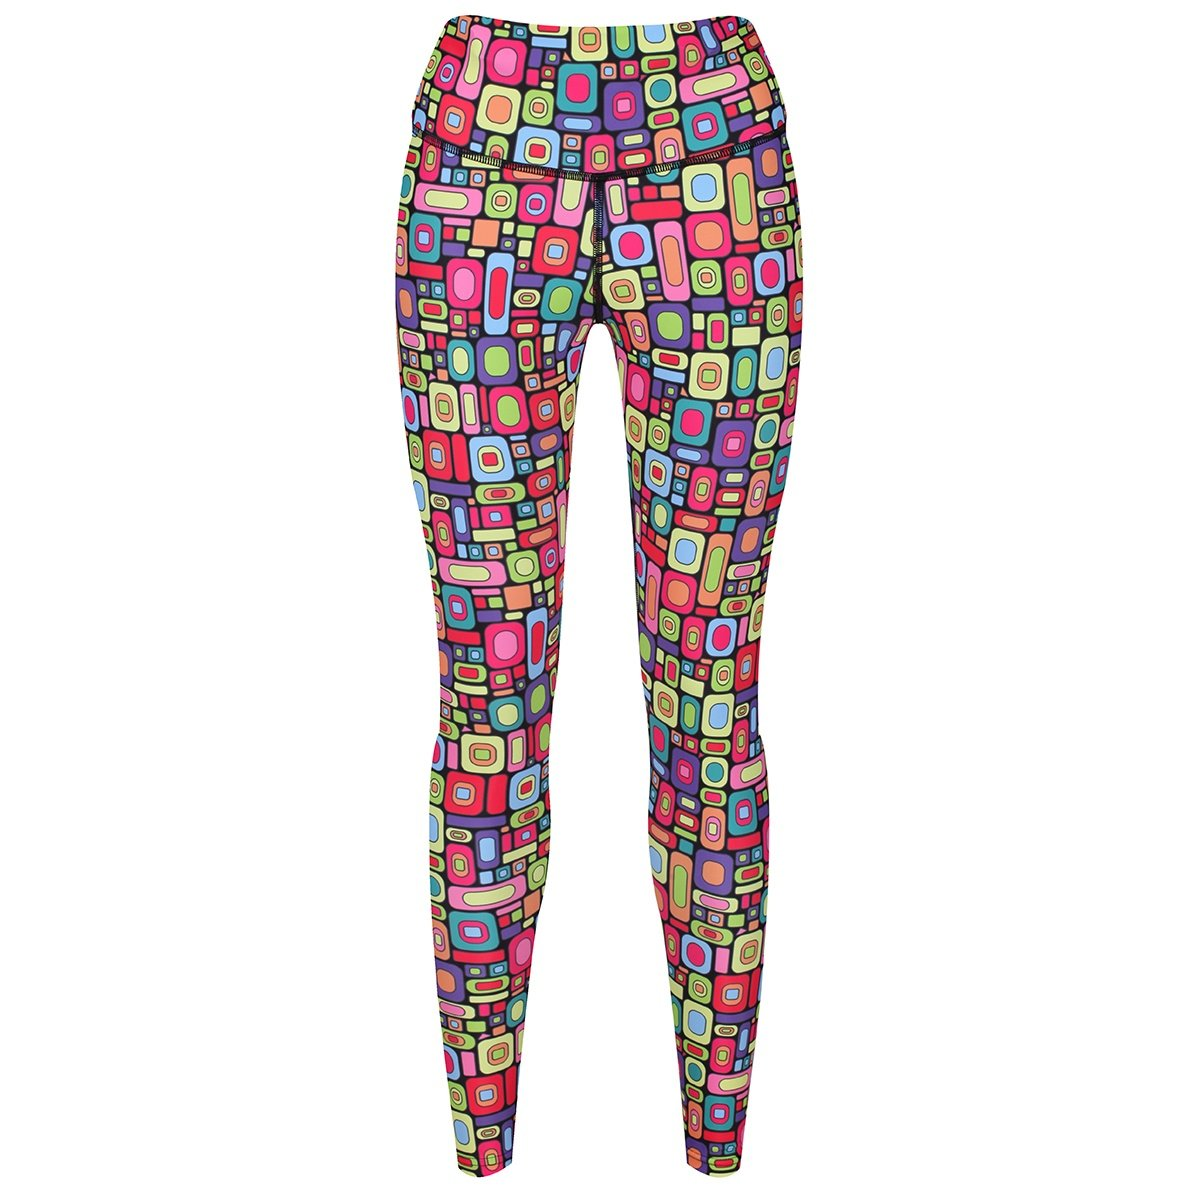 Abstract O's Leggings 'Limited Edition' (Pre-order)